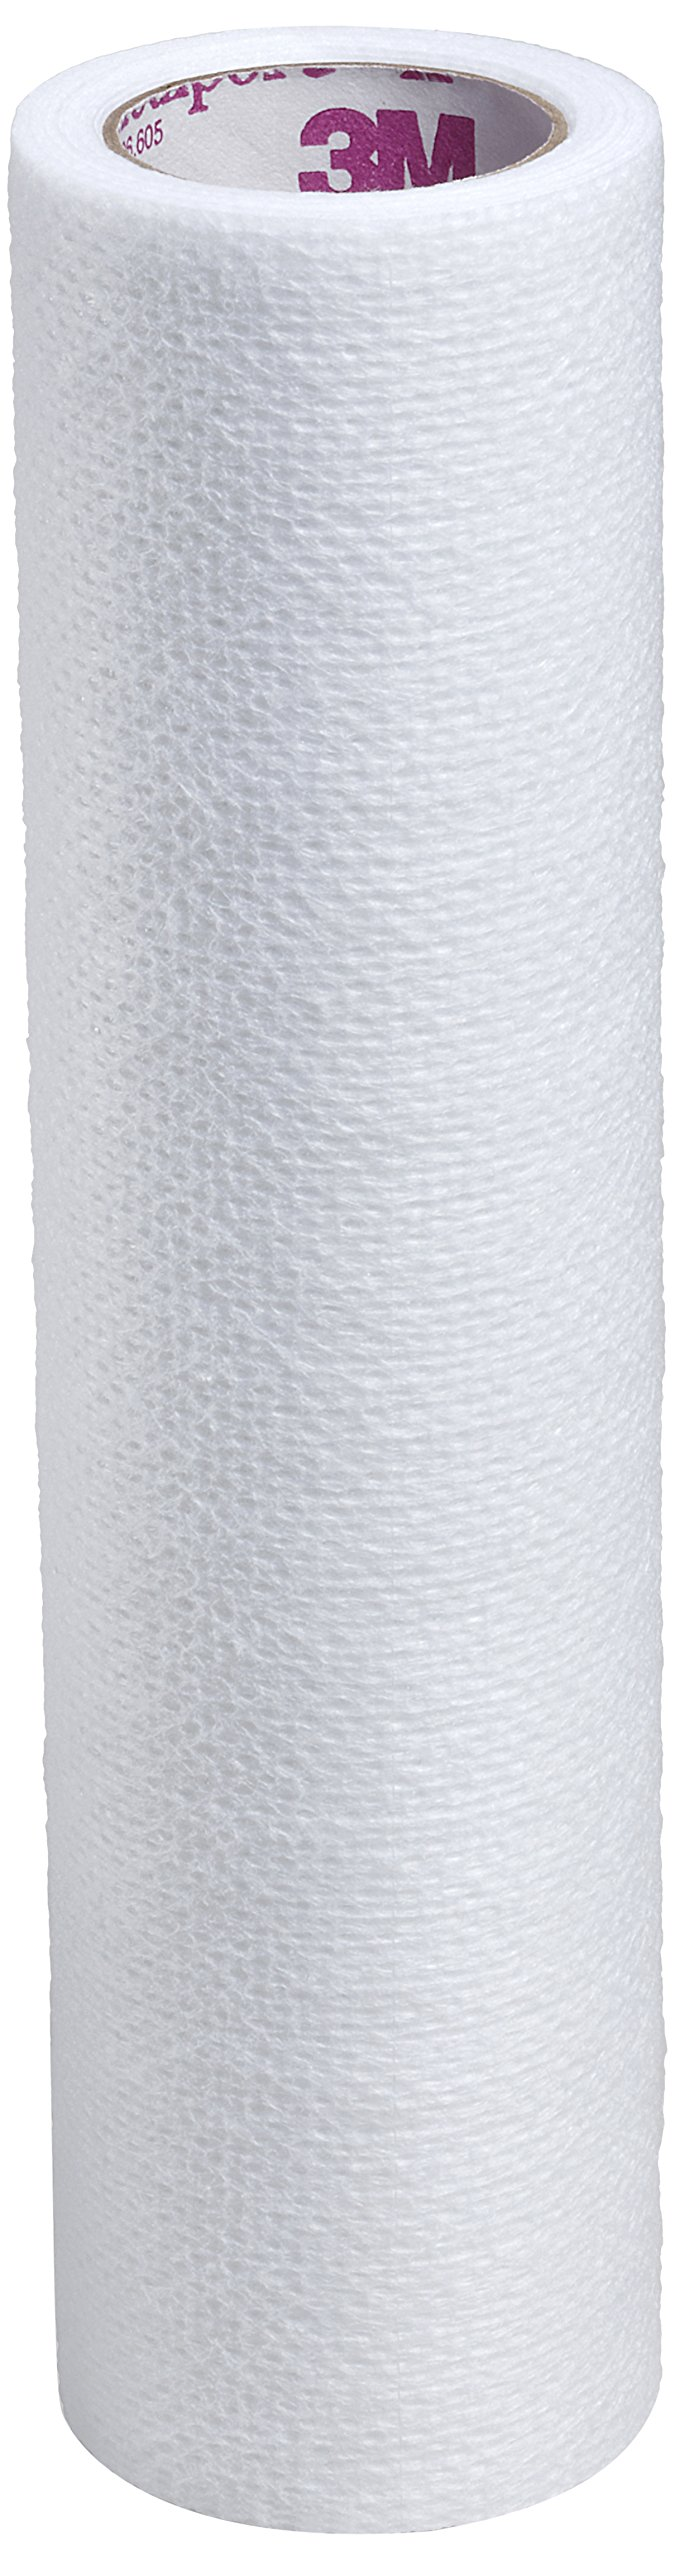 3M 2866S Medipore H Soft Cloth Tape (Pack of 16)